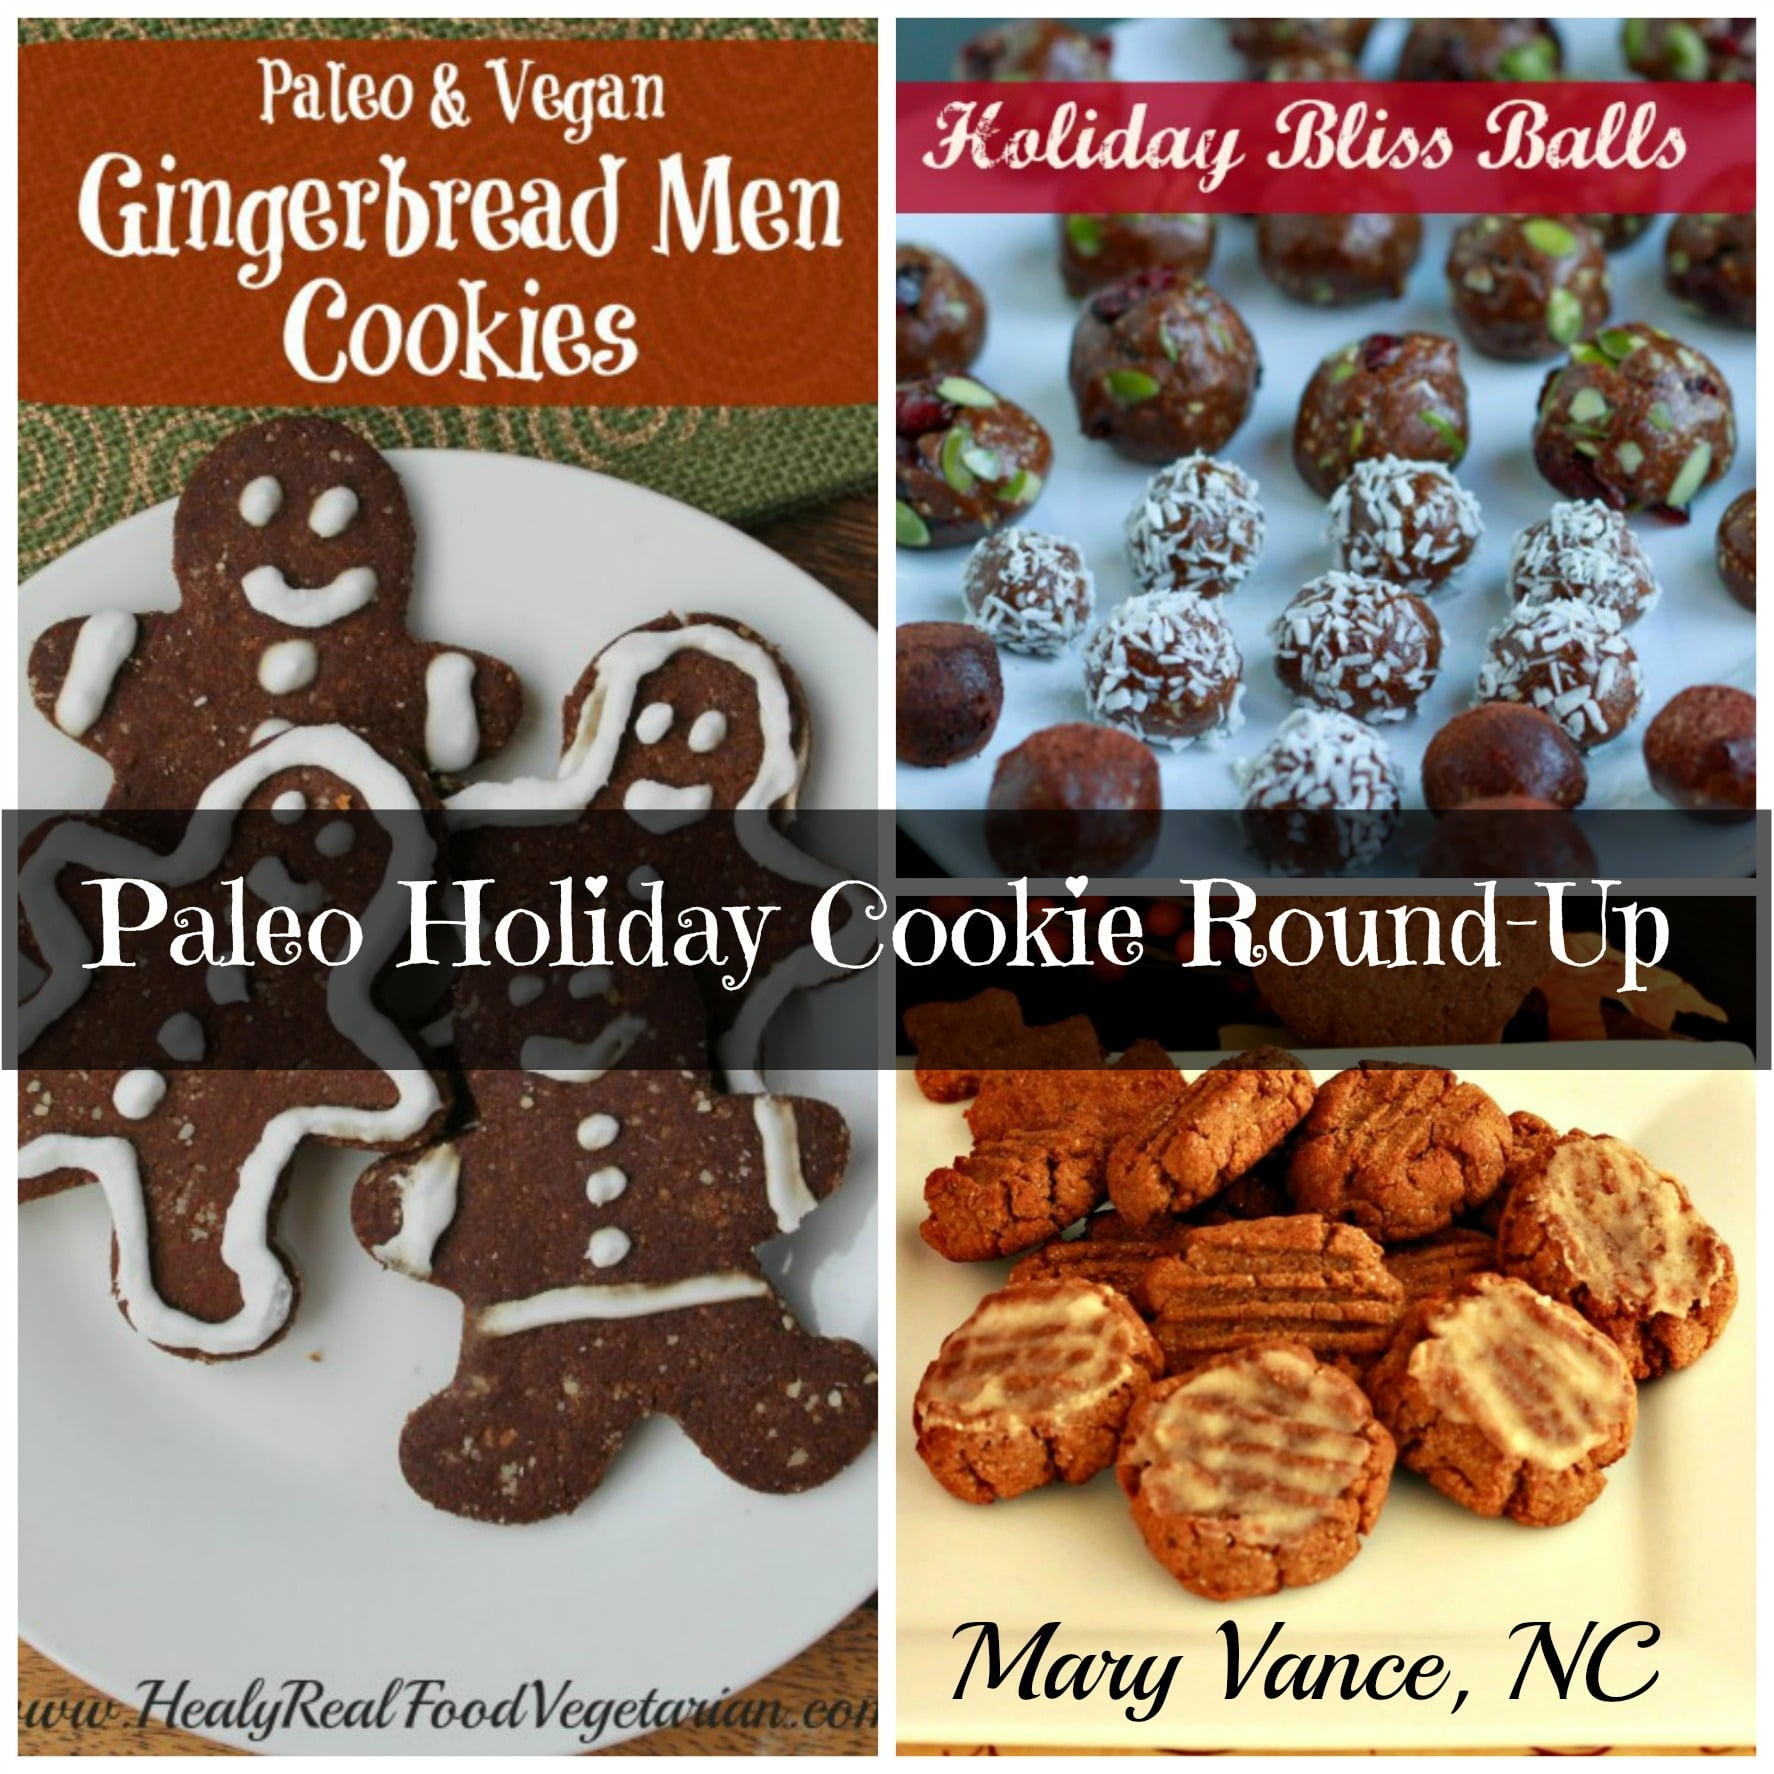 Paleo Holiday Cookie Recipe Round-Up!